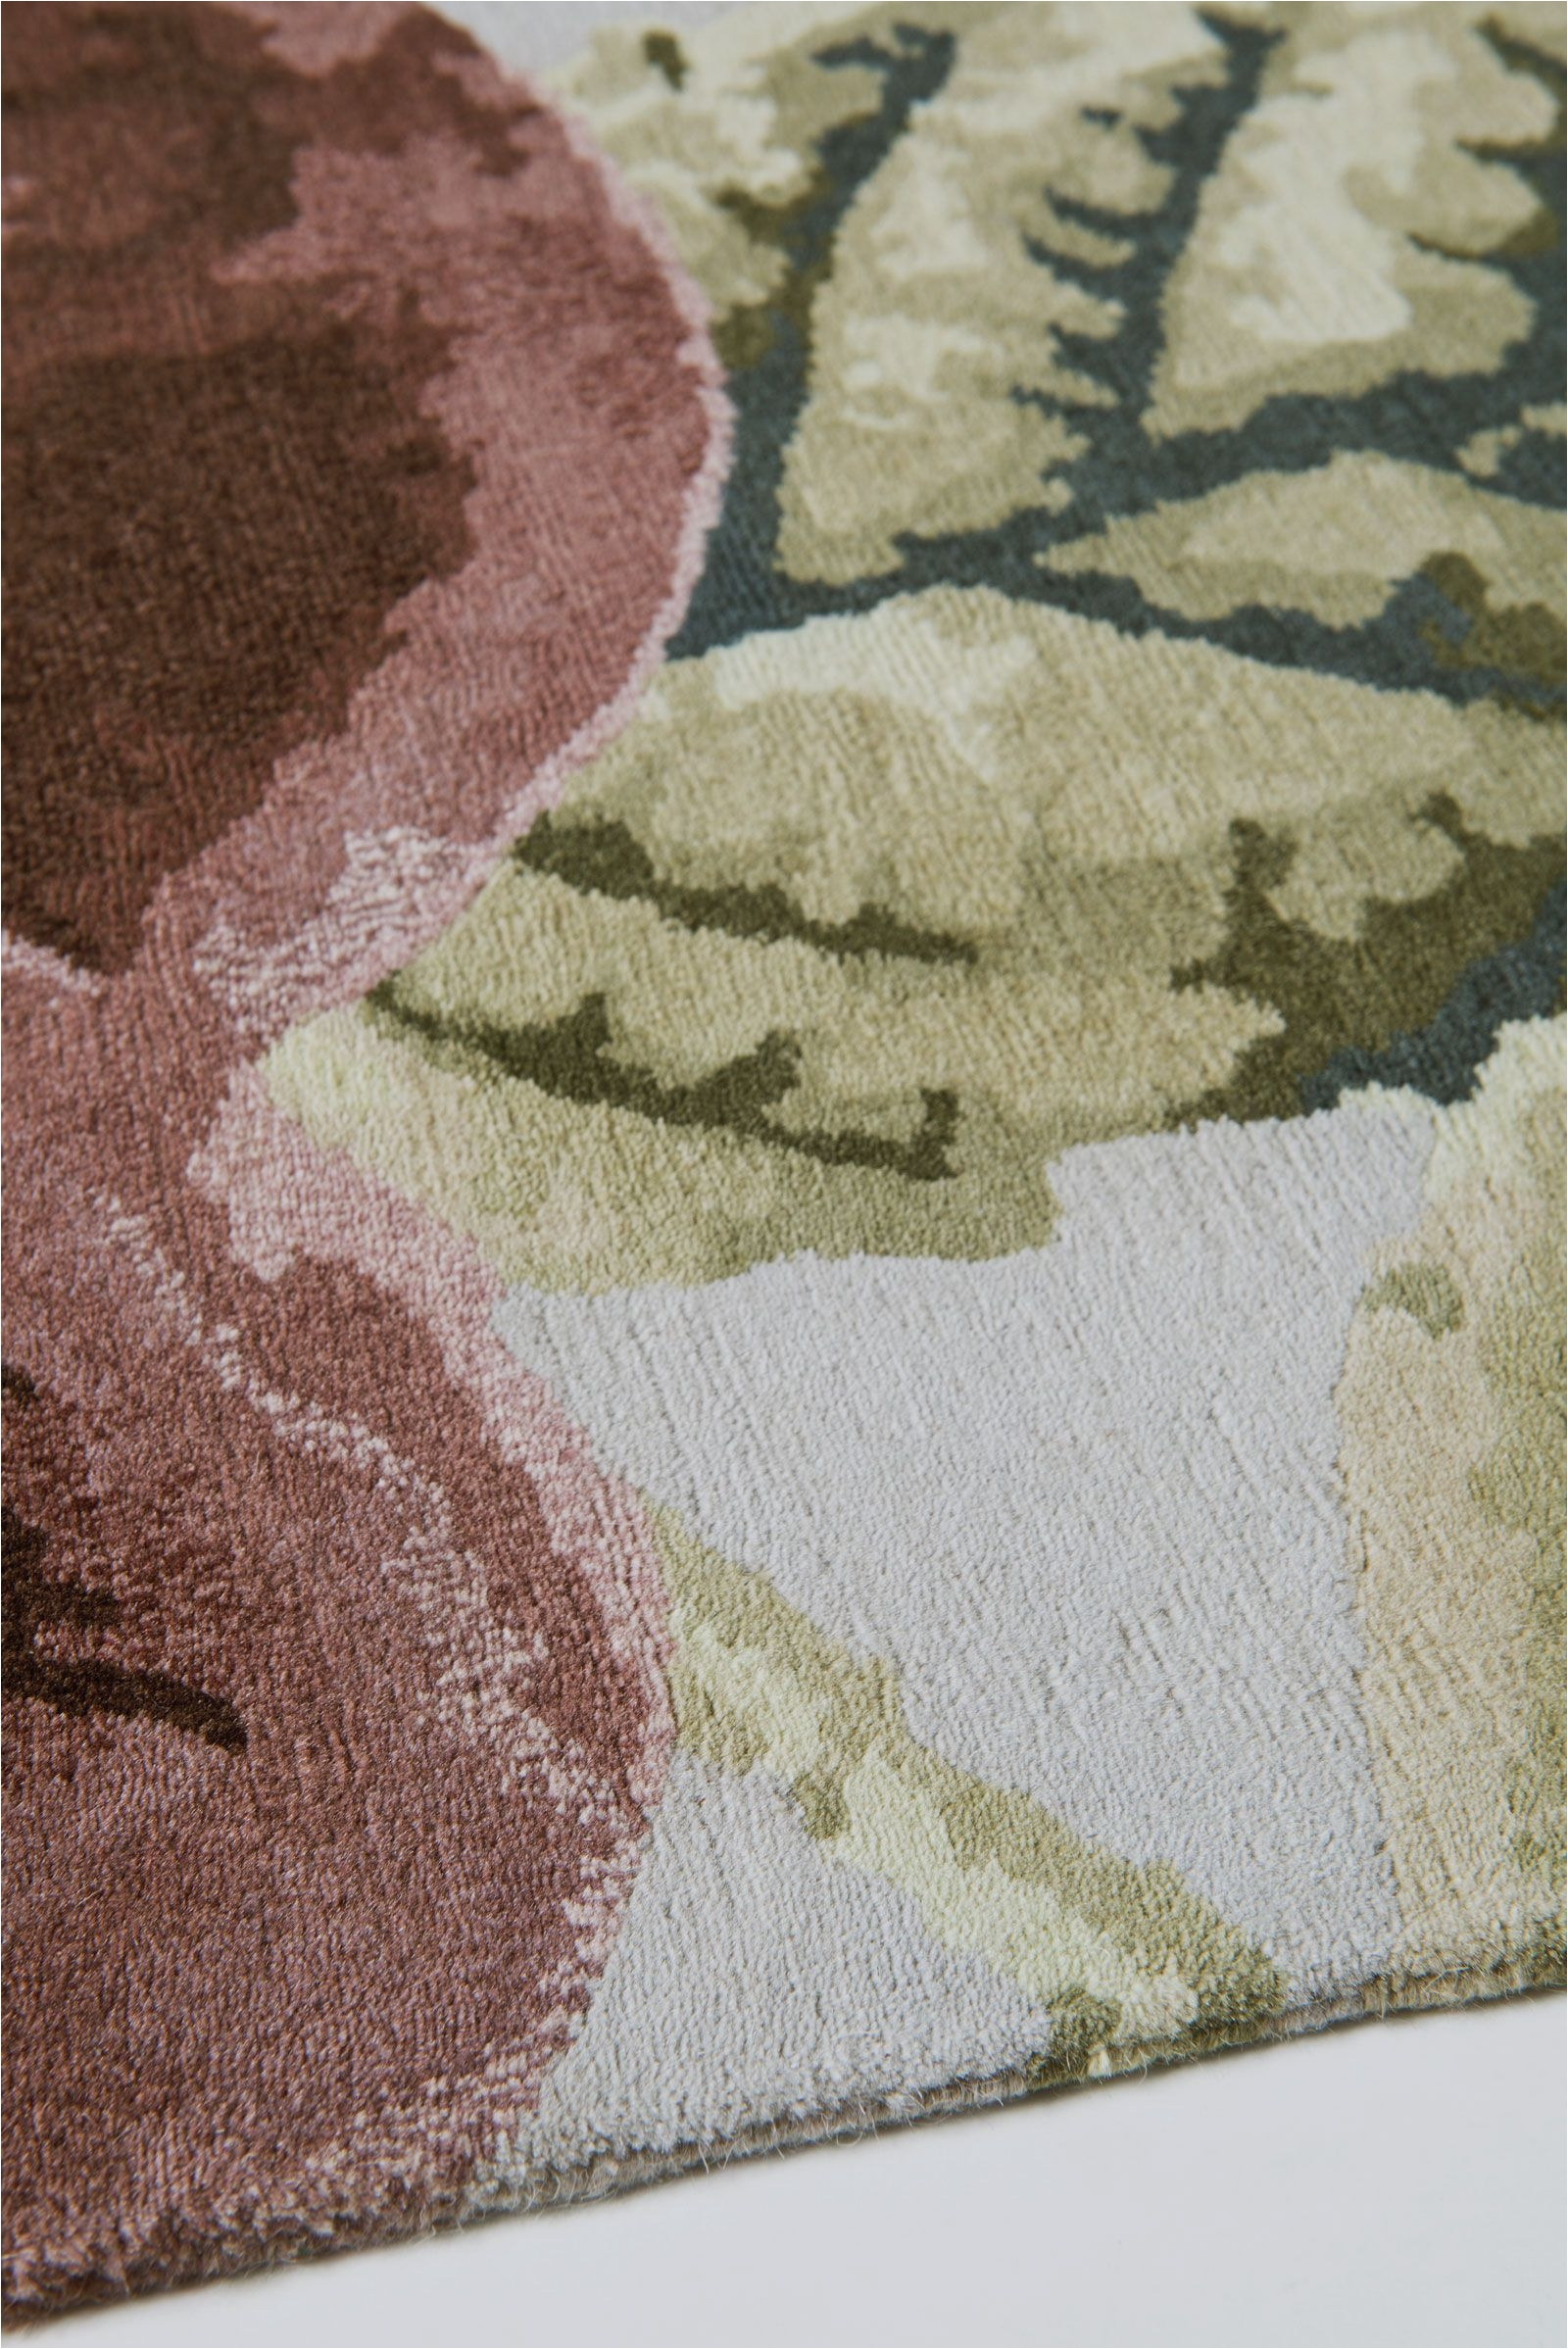 Westwood Accent Rug Vivienne S Rose Dust by Vivienne Westwood the Rug Company